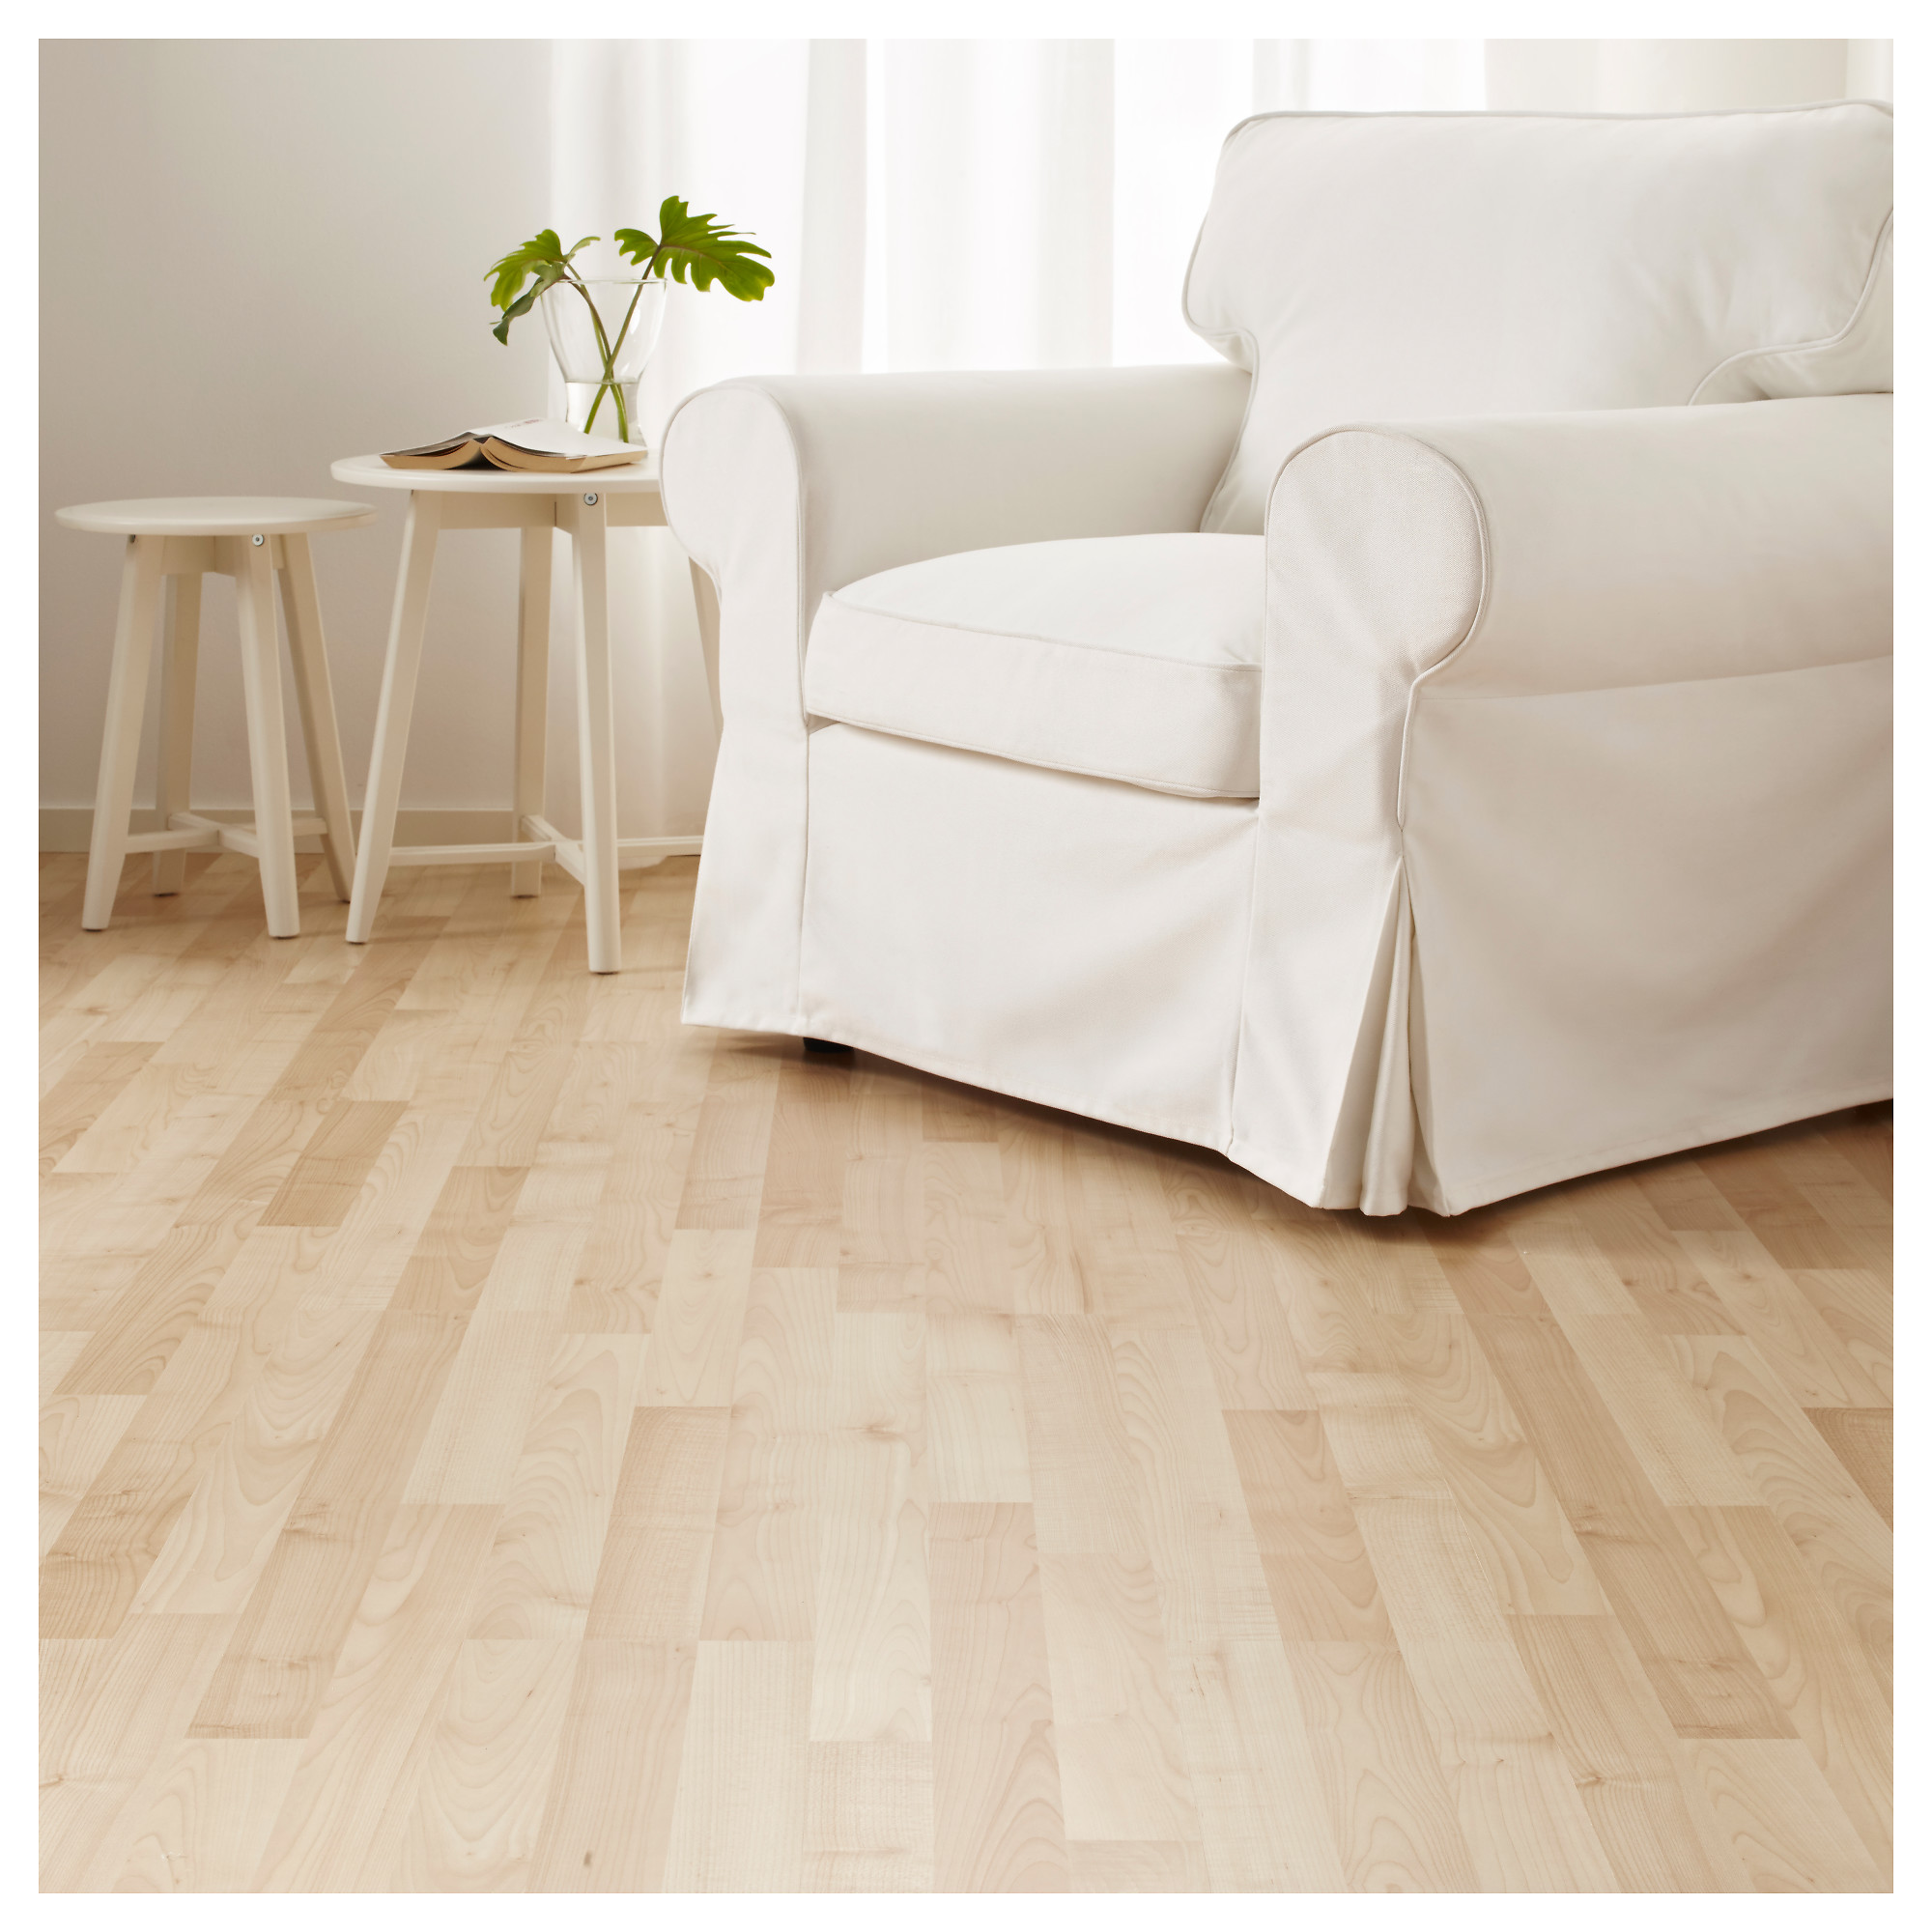 Costo parquet ikea interesting perfect design parquet for Parquet prefinito prezzi ikea